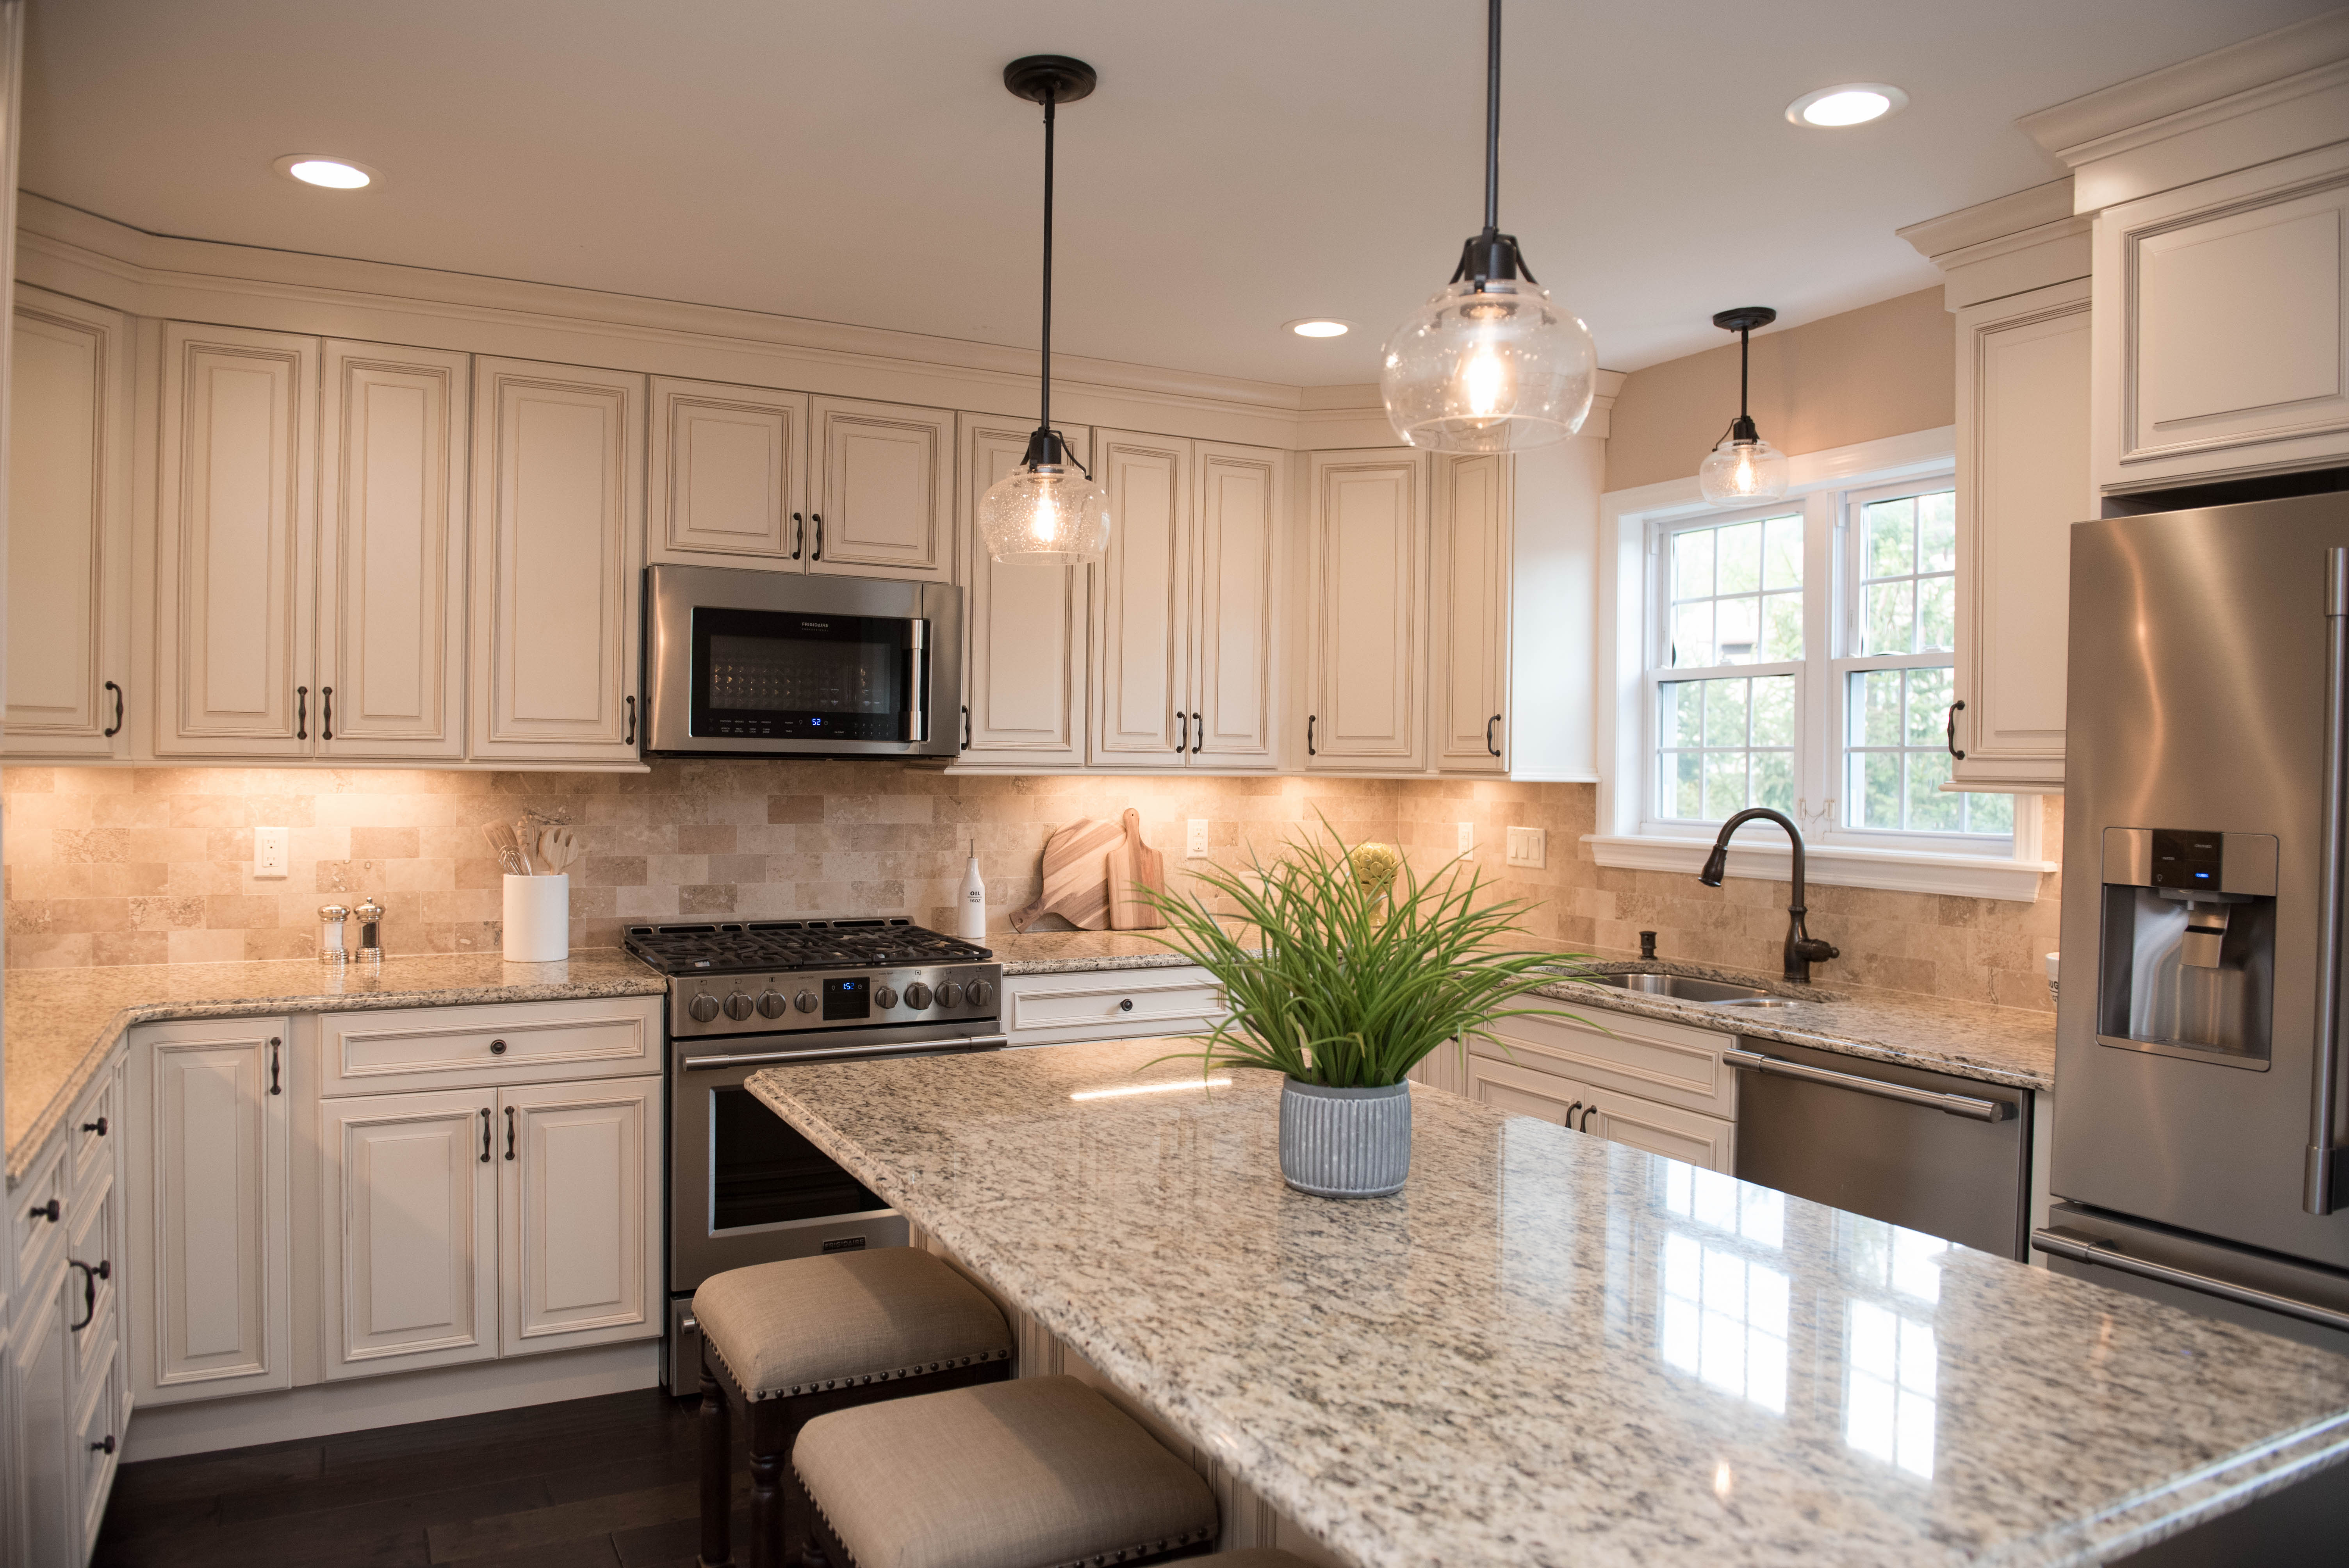 Find Fine Cabinetry For Any Design And Budget At Five Star Millwork